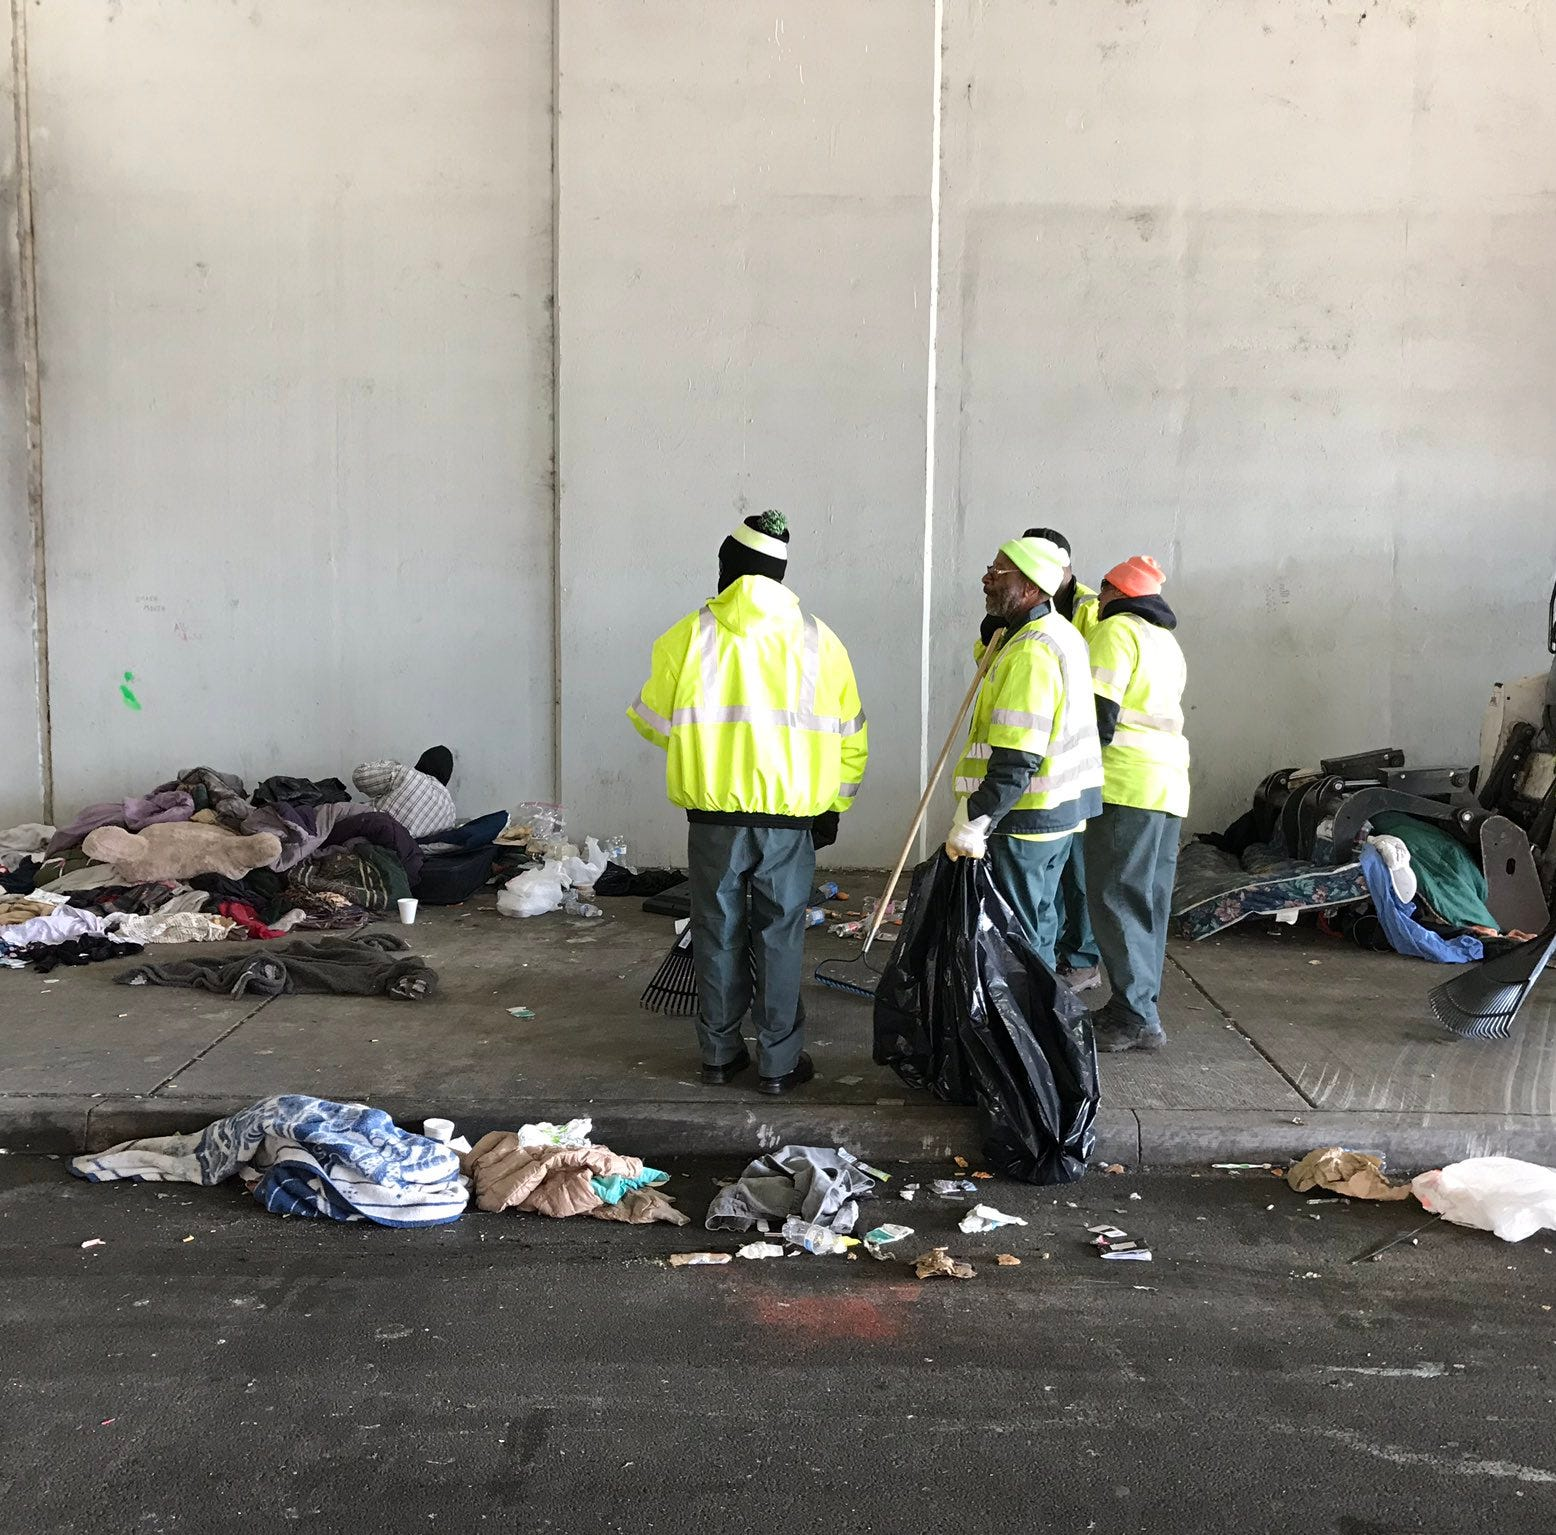 Knocked down, cleaned out: Louisville tent city vanishes as homeless search for new spot